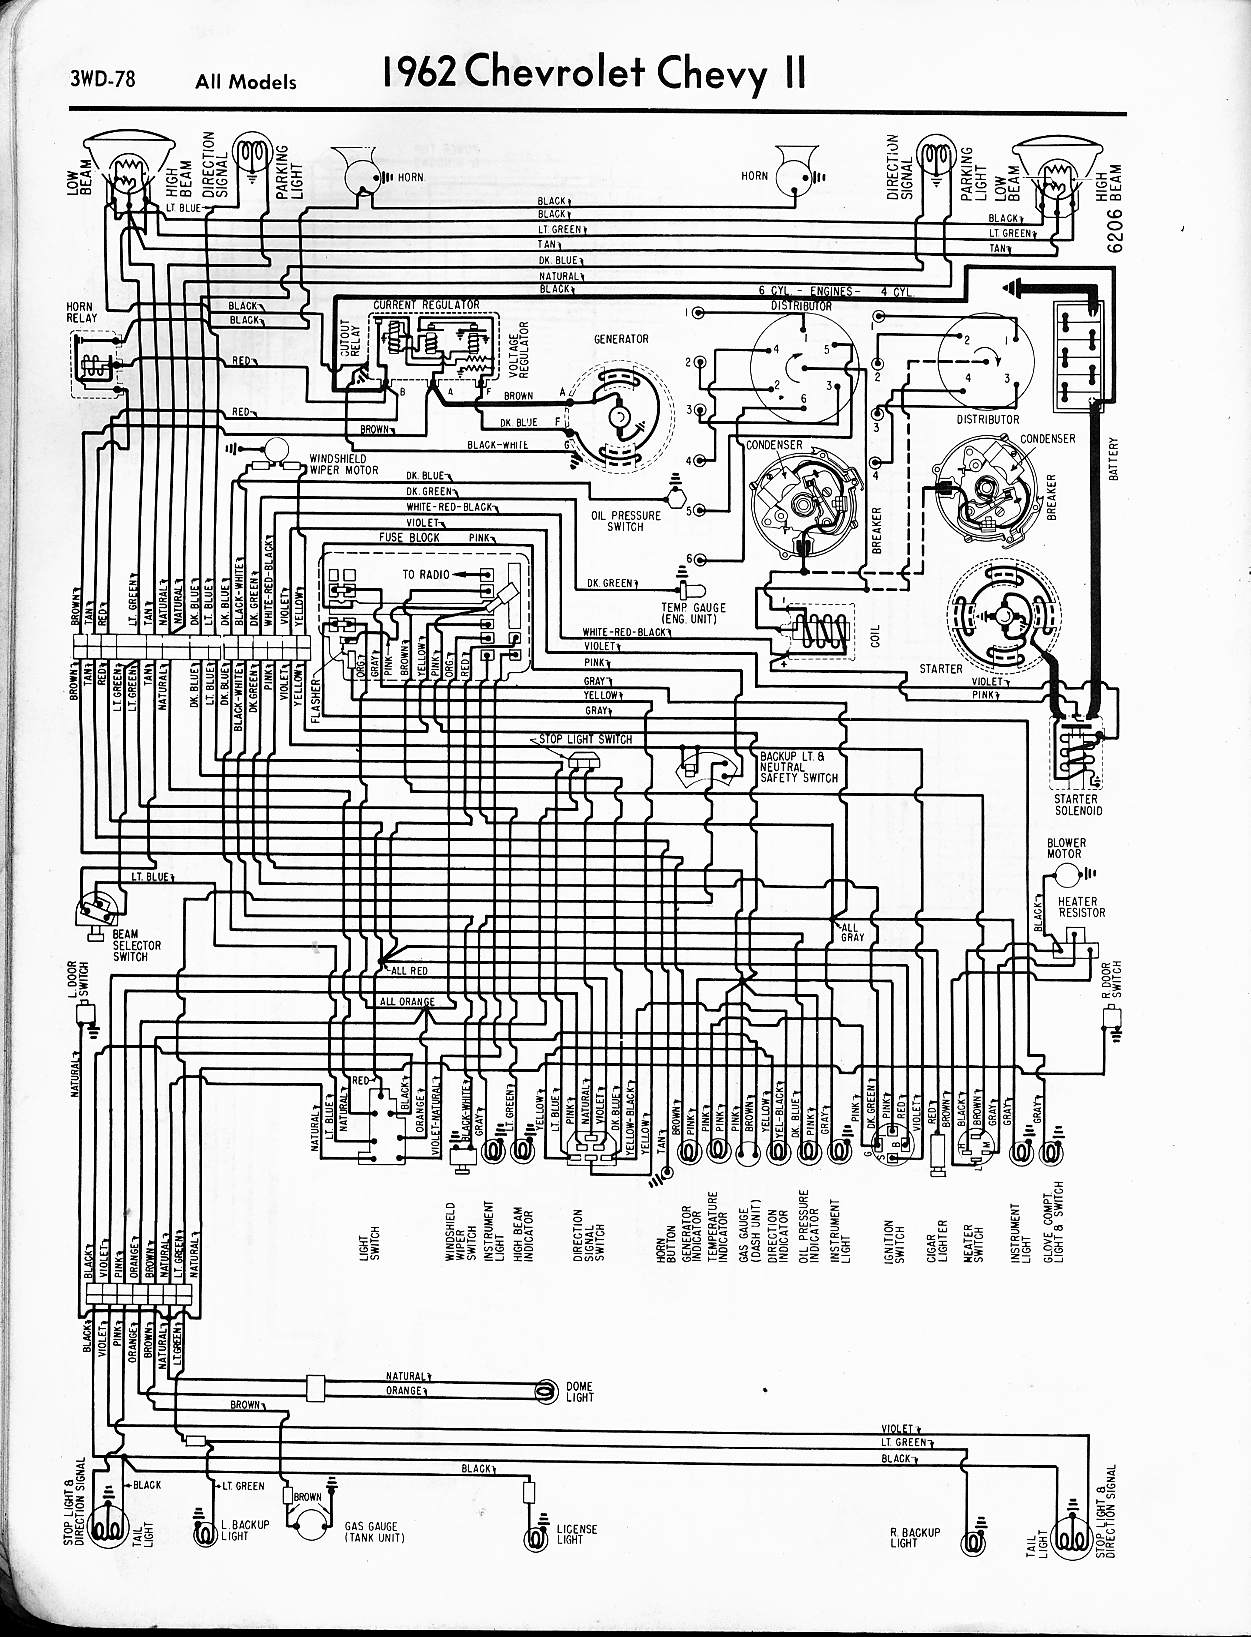 MWireChev62_3WD 078 1963 c10 pickup wiring diagram pdf chevy wiring diagrams \u2022 free 67 Chevy 2 Nova at aneh.co